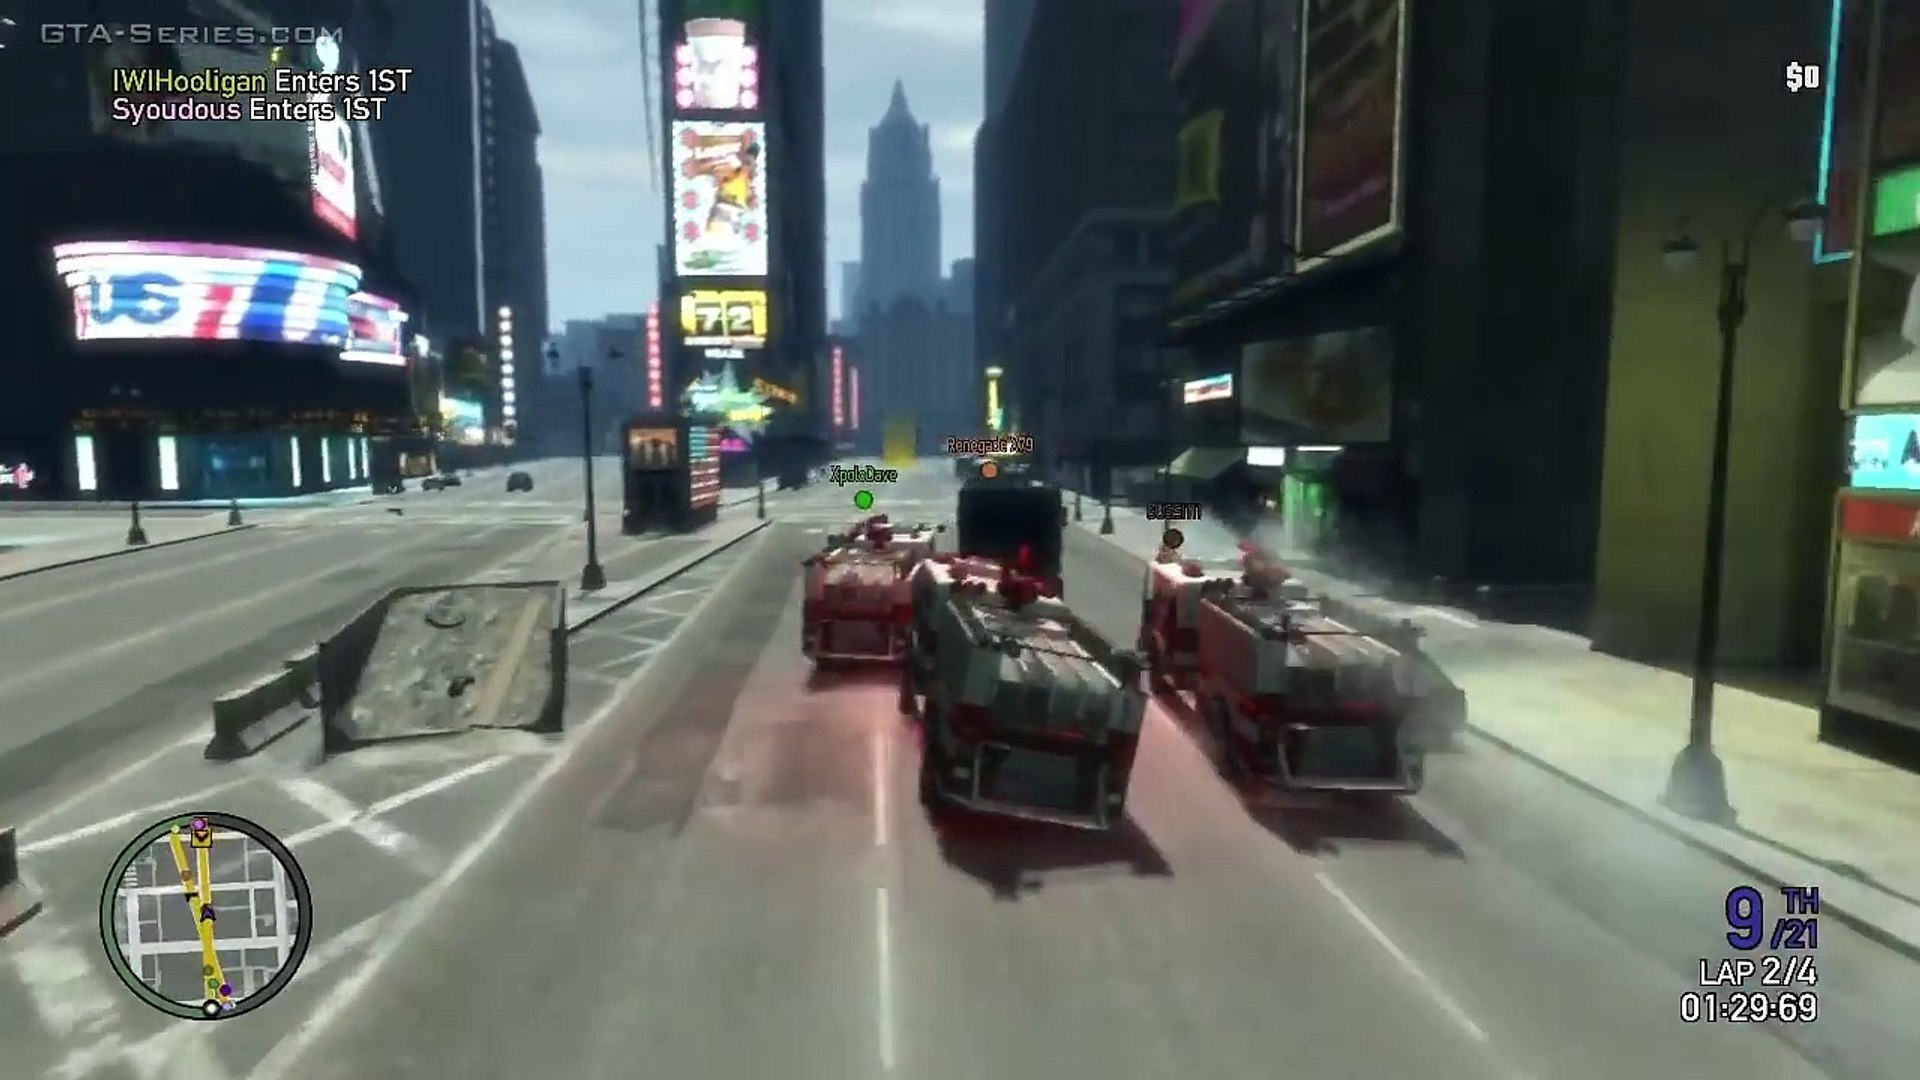 Rockstar games multiplayer event on gta iv pc december 2 2011 grand casino mille lacs entertainment